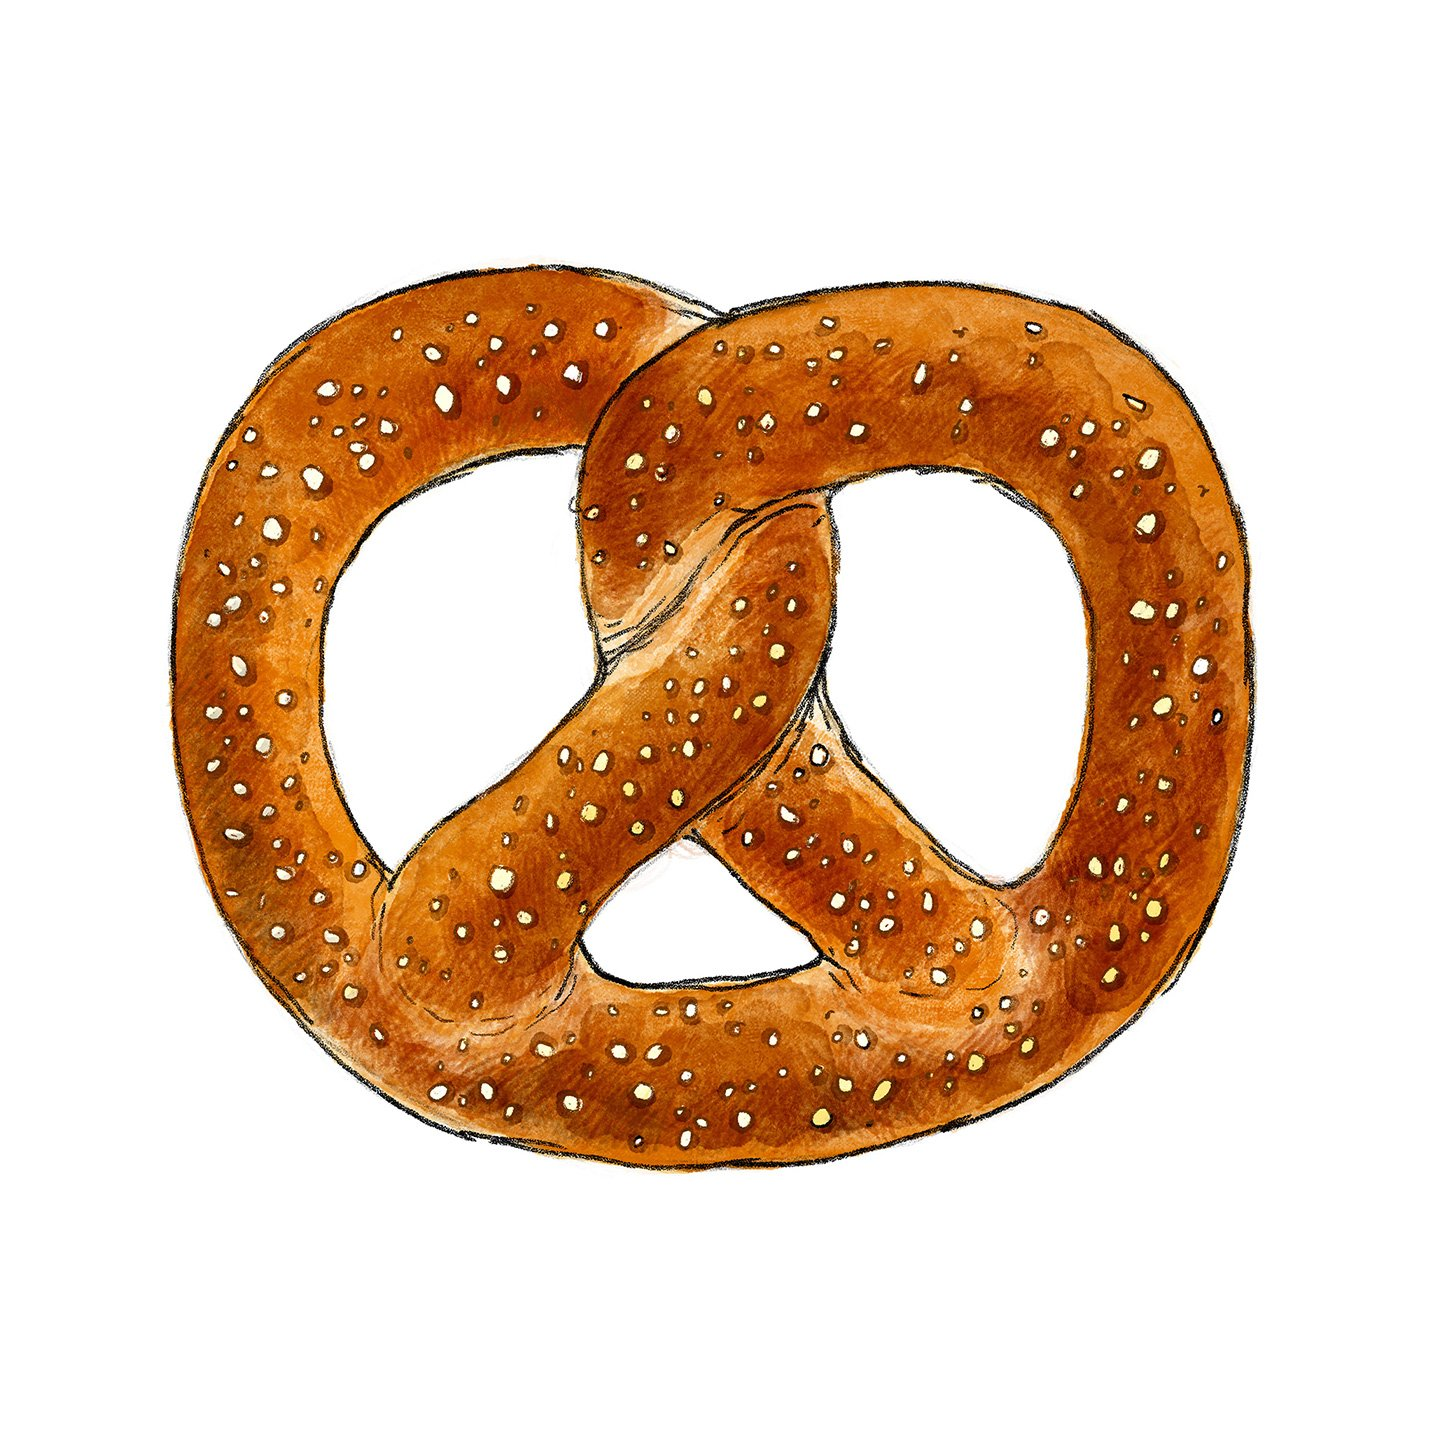 1440x1440 The Pretzel Podcast (@pretzelpodcast) Twitter